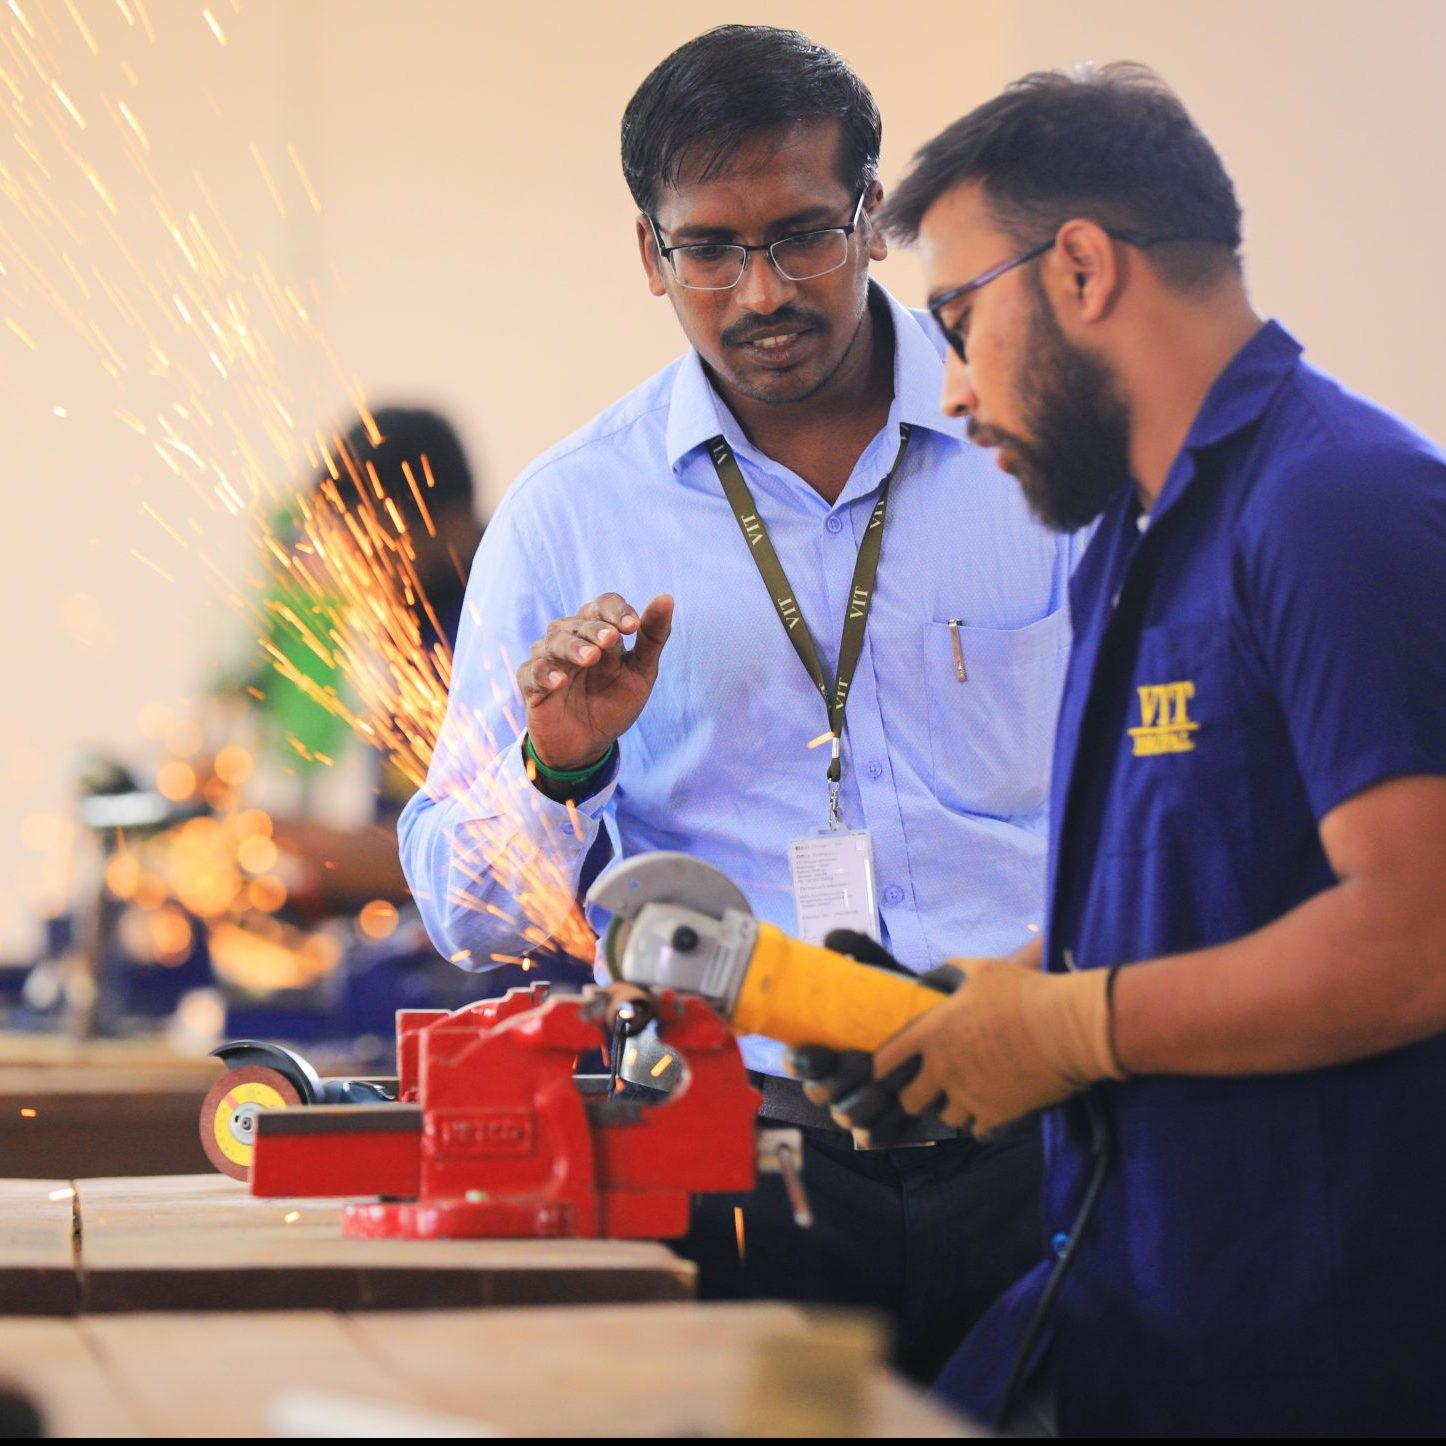 Mechanical Lab VIT Bhopal  - Best University in Central India -  3-scaled-e1581404578985